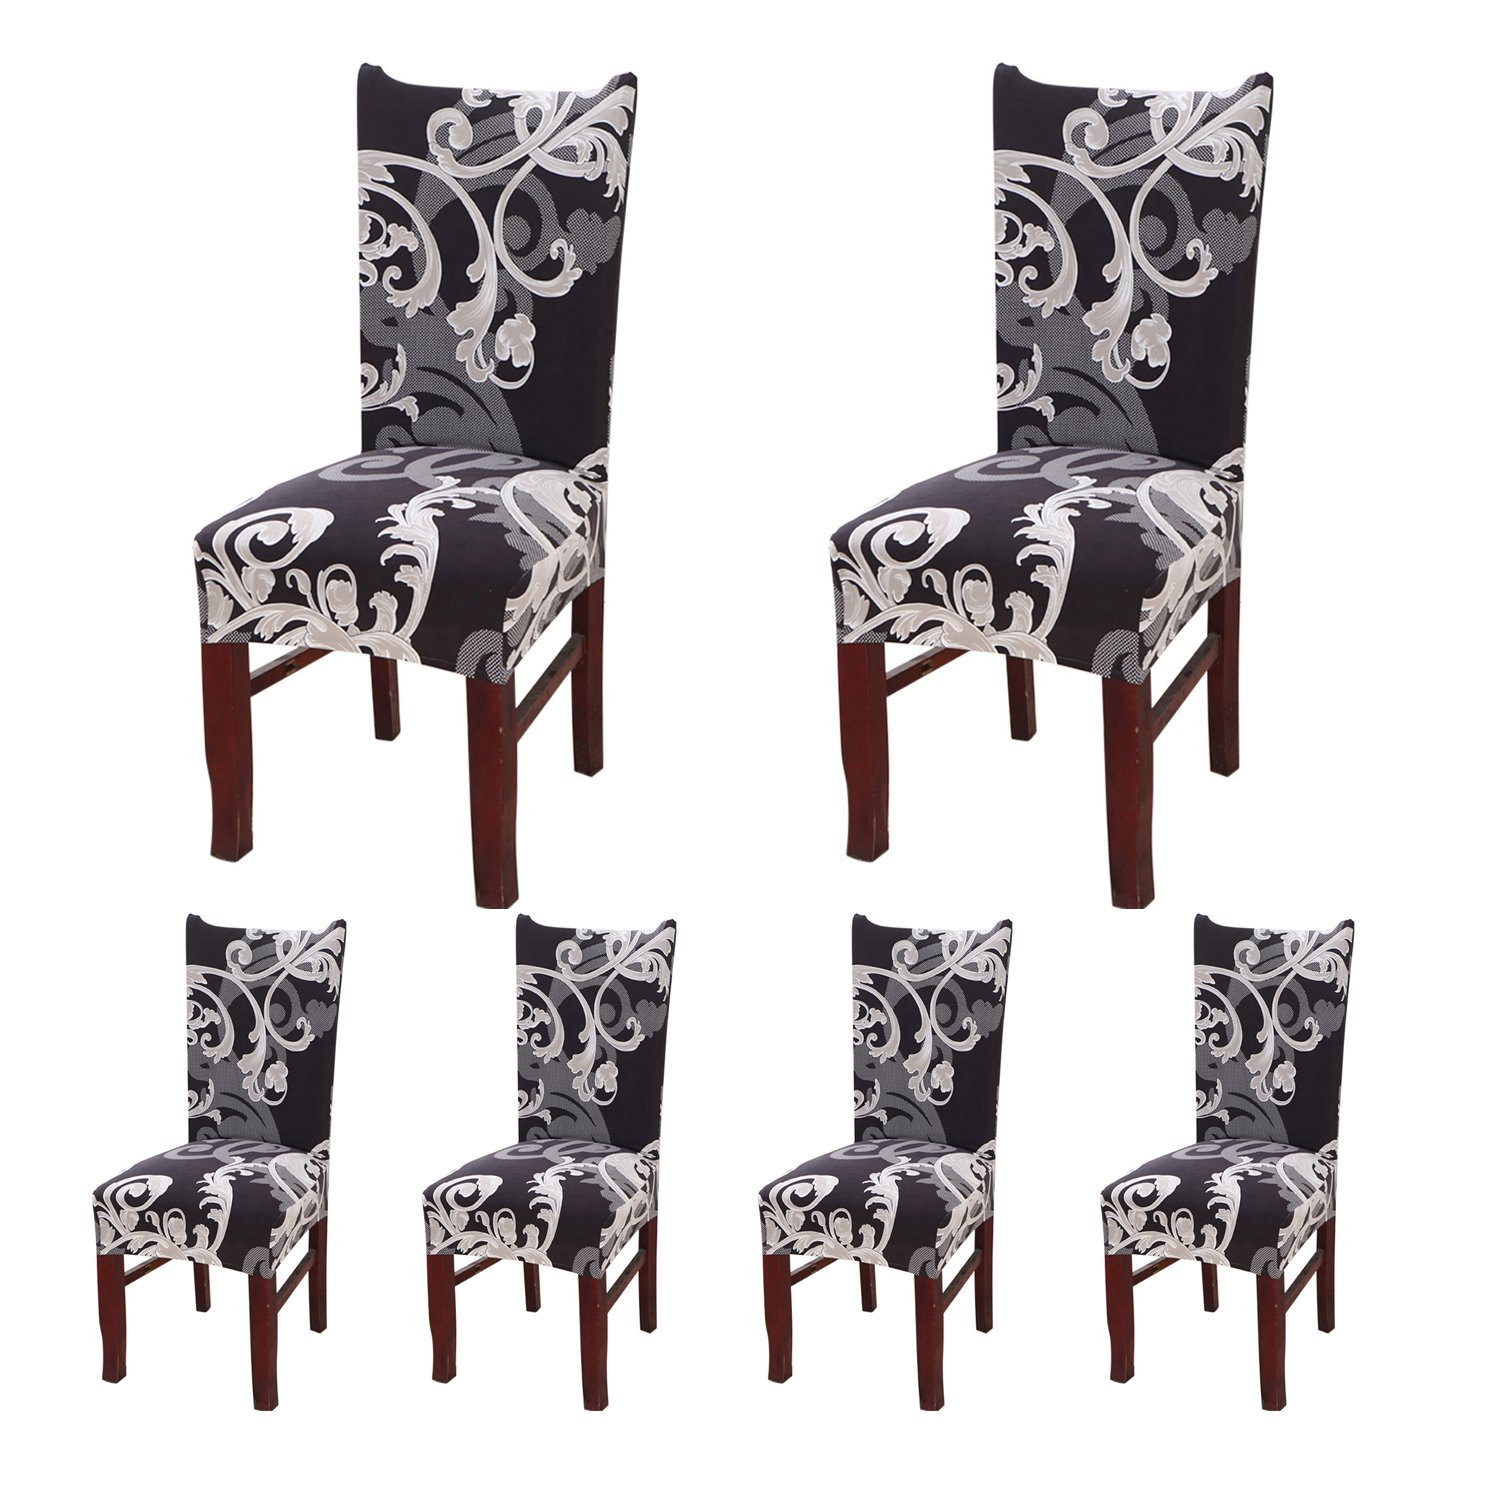 SHDIBA 6 x Stretch Short Dining Room Chair Protector Cover with Printed Pattern Seat Slipcover for Wedding Party, Banquet,Ceremony,Dining Room, Hotel (6, 10)